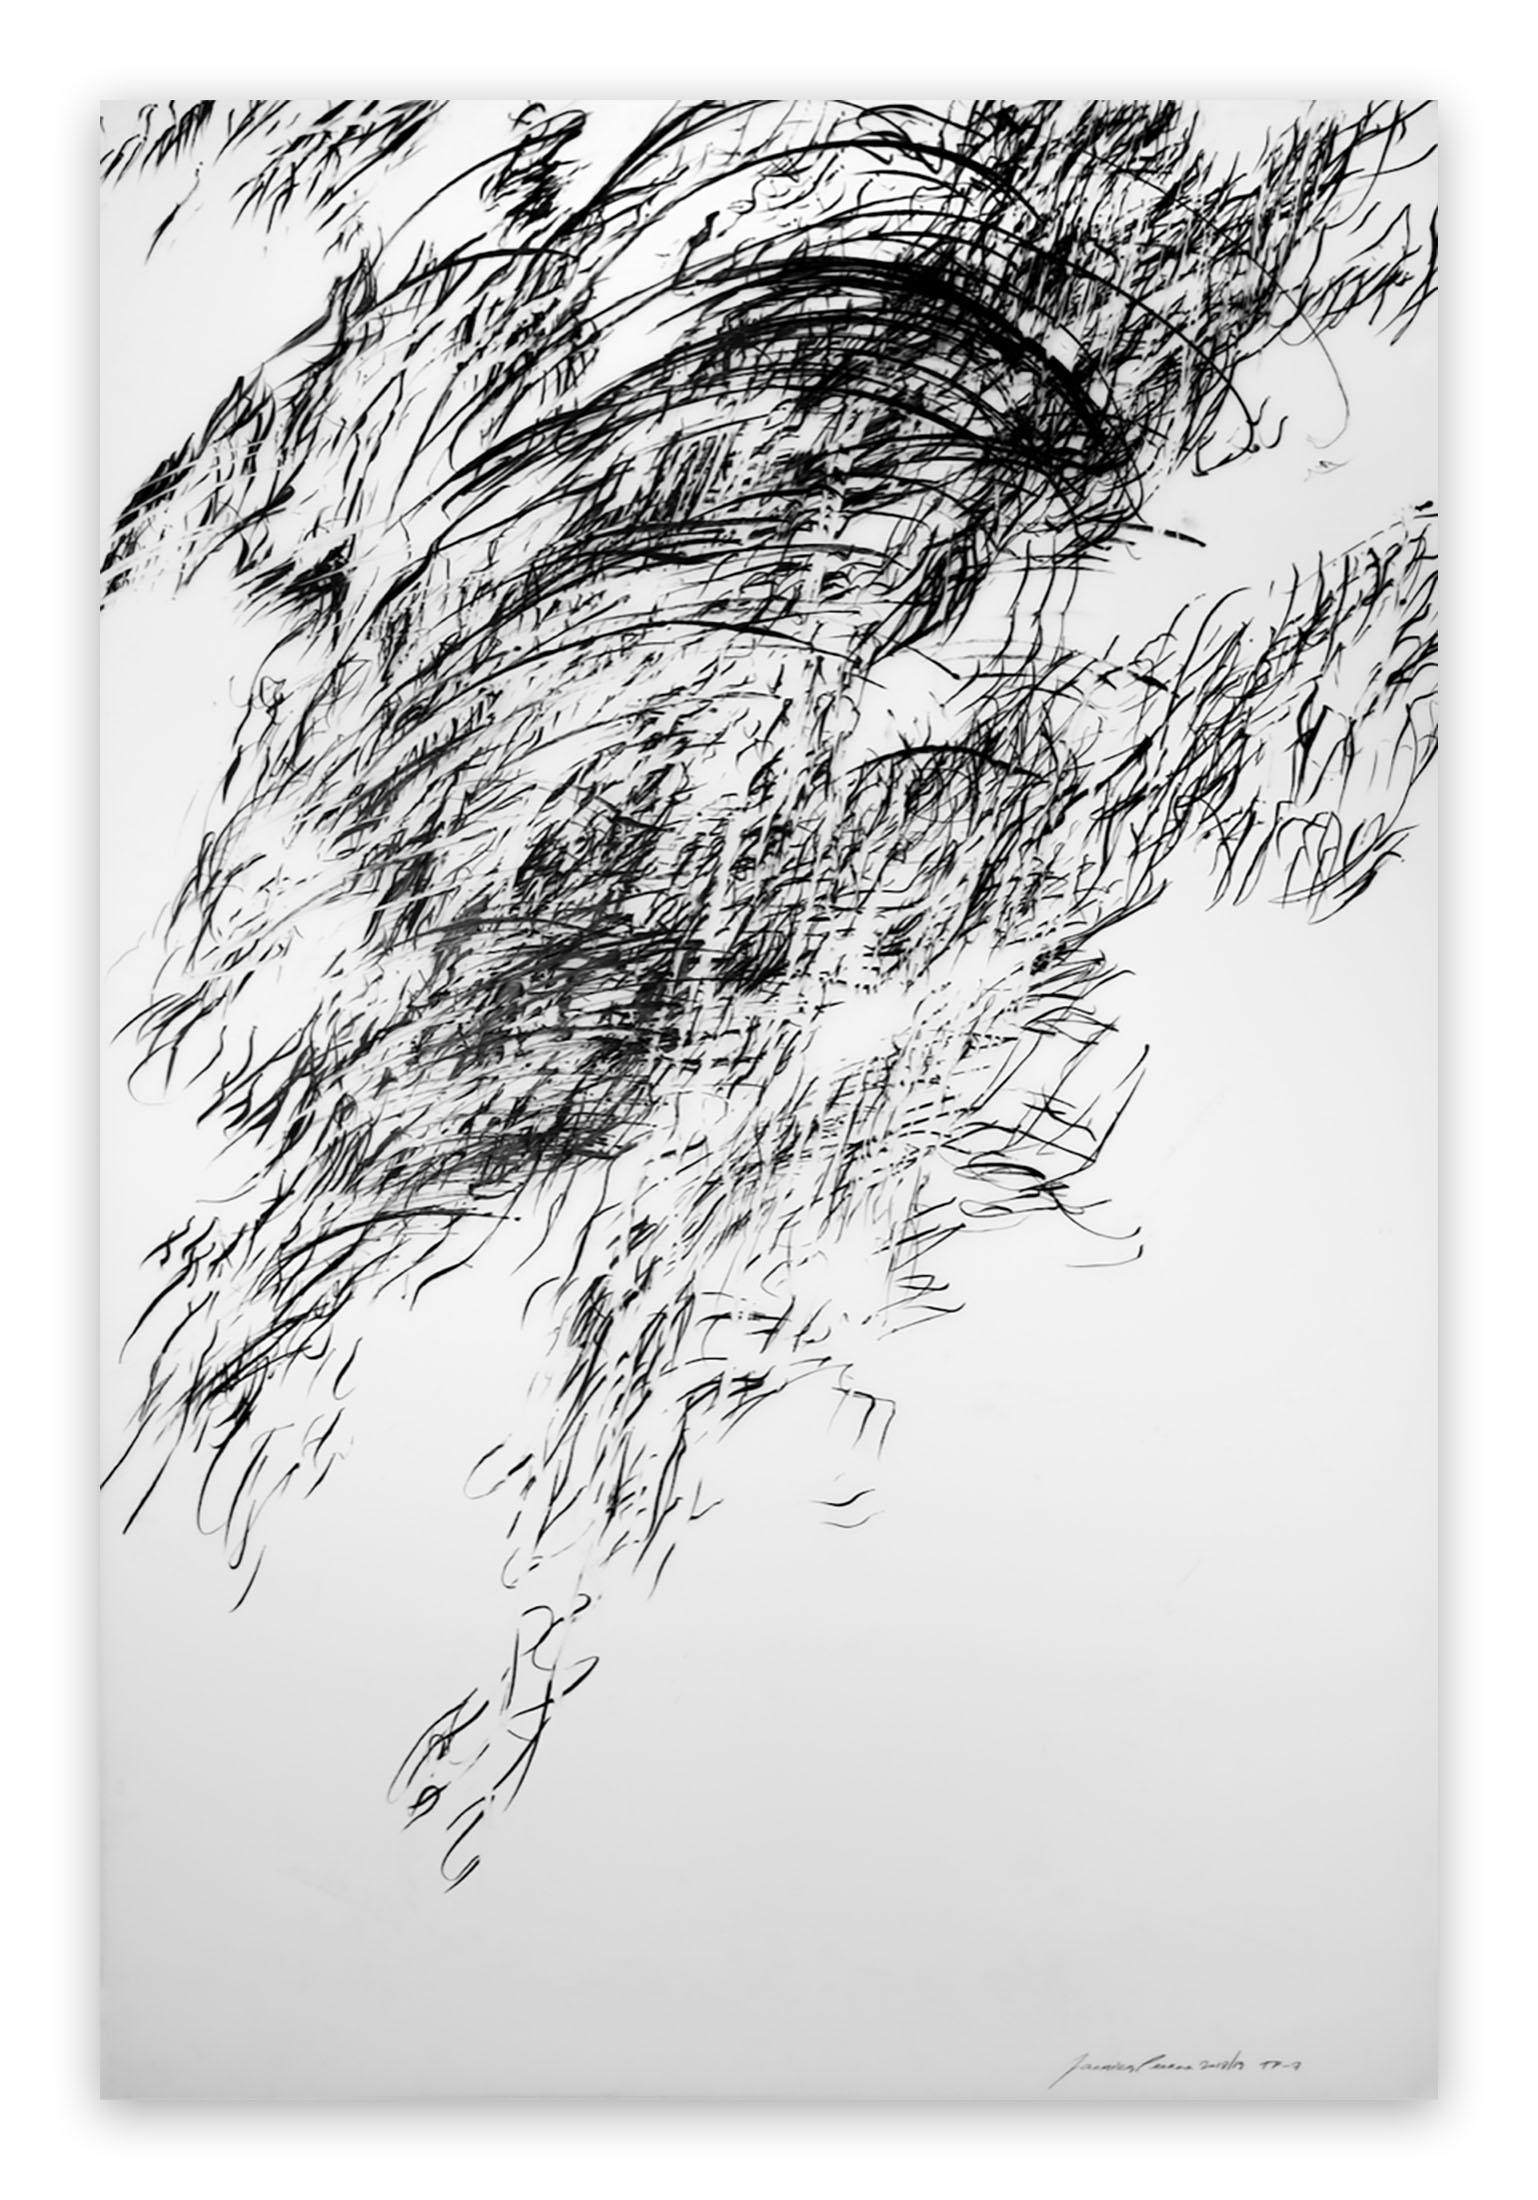 Tipping Point #7 (Abstract drawing)